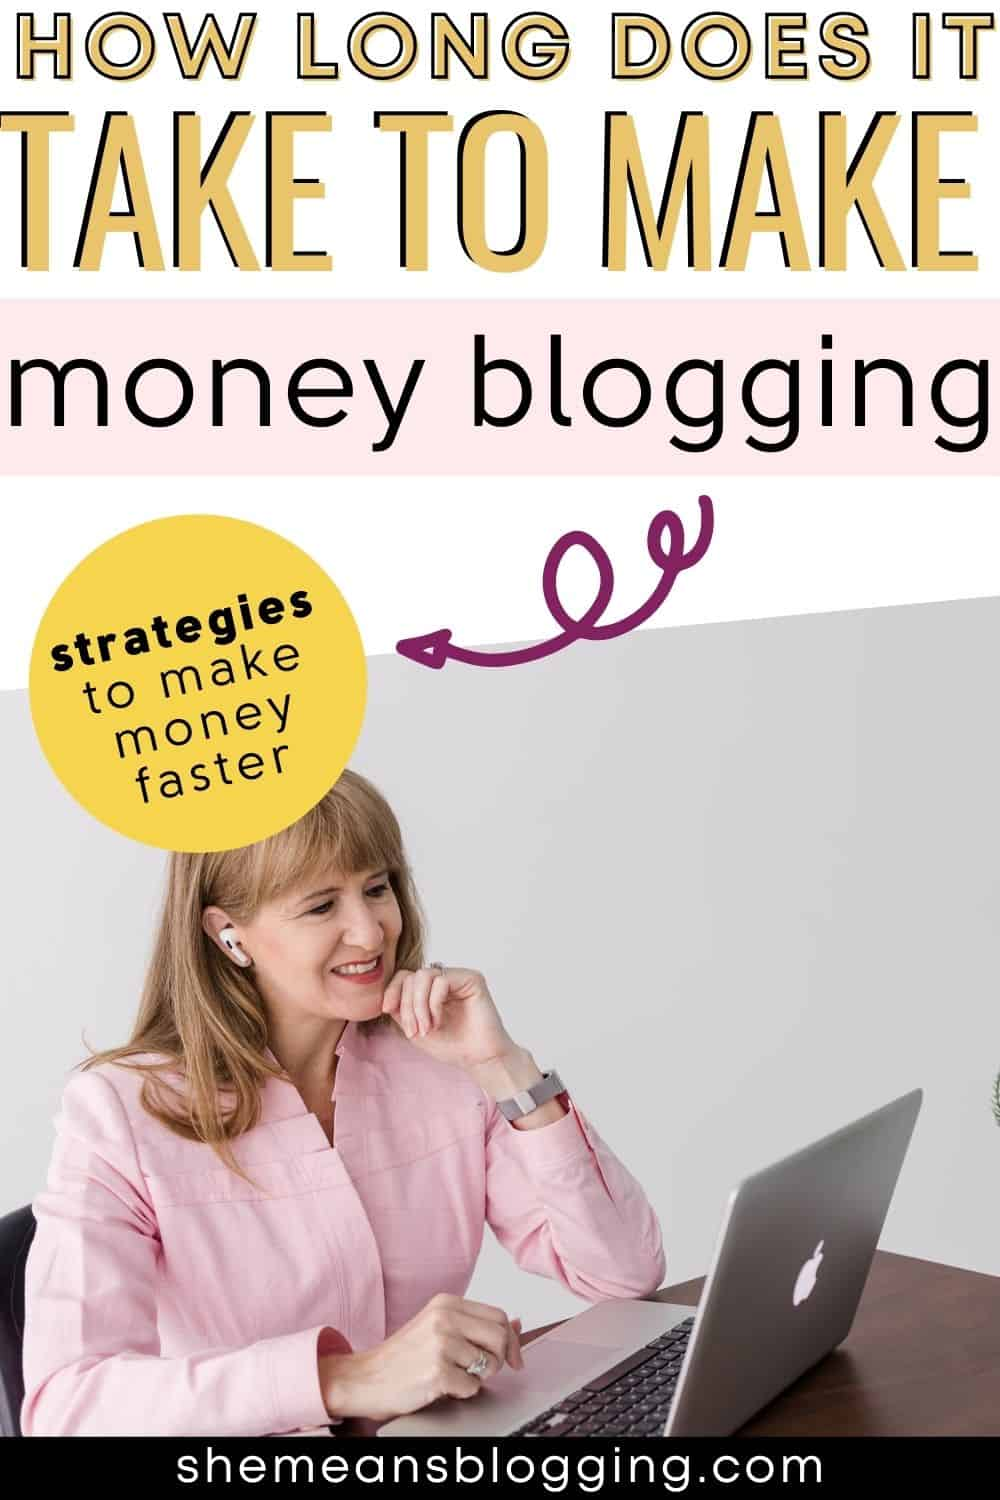 How long does it take to make money from blogging? Click to find the answer to how much time it takes to start making full time income from blogging. Plus, find multiple strategies to make money faster on your blog. Click to learn how to make money blogging if you are new.